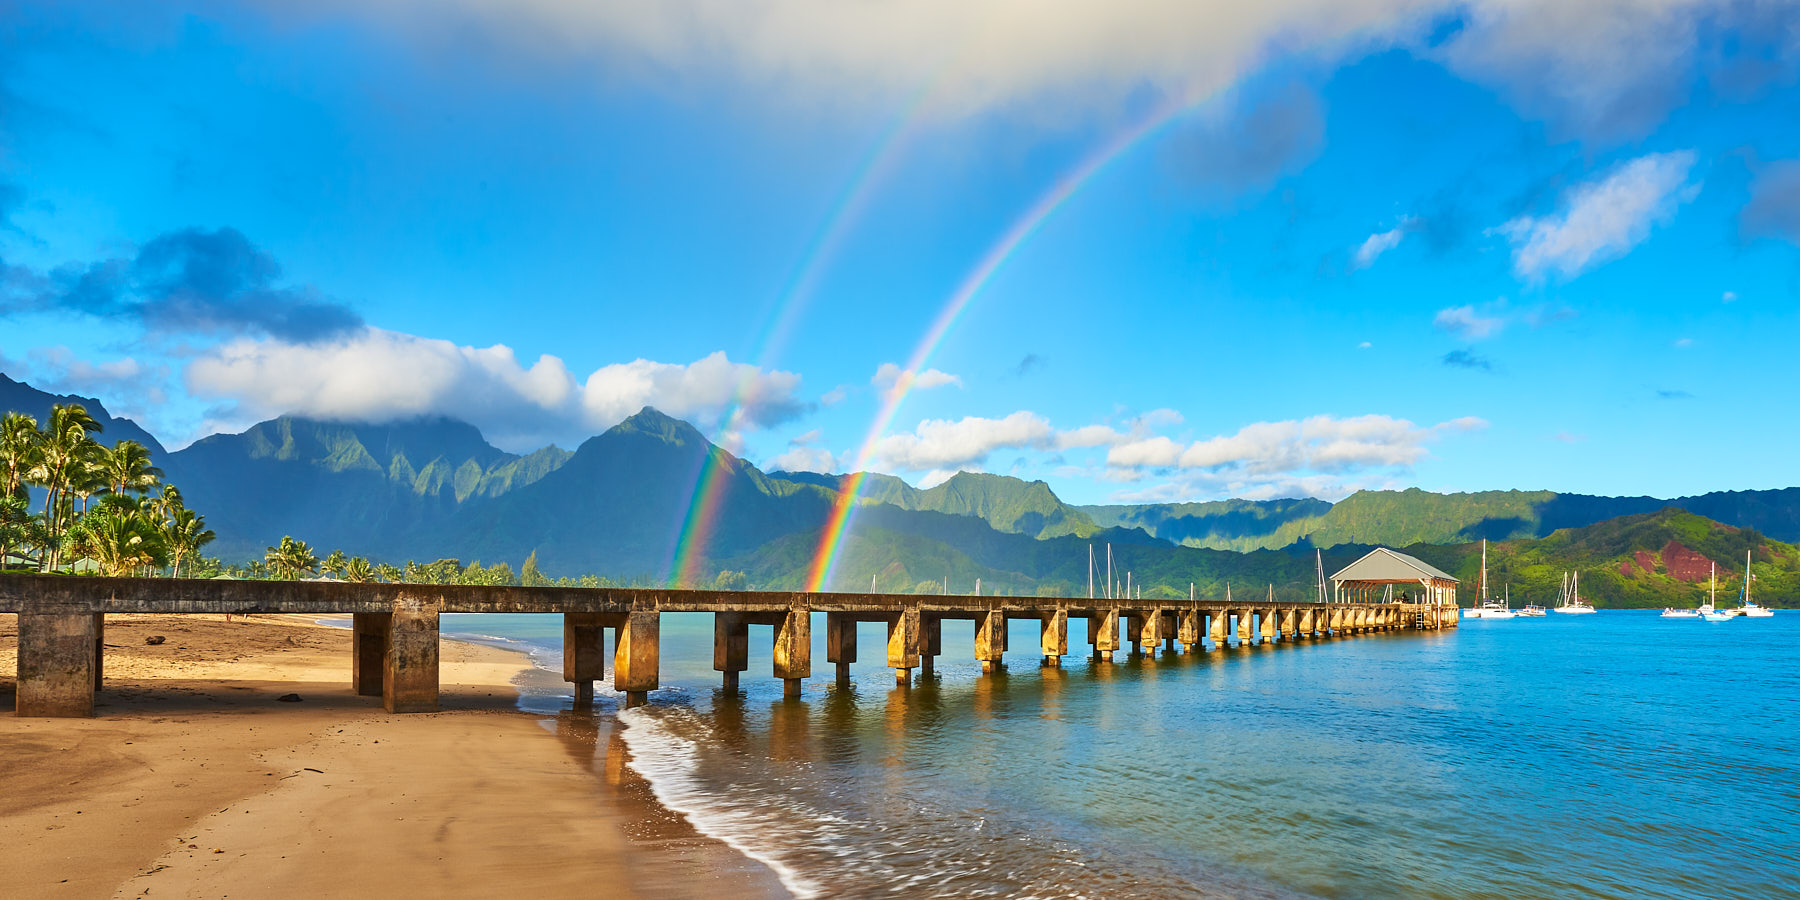 the beautiful Hanalei Bay Pier in the morning with a double rainbow over the pier and the lush towering mountains of Hanalei Kauai in the background